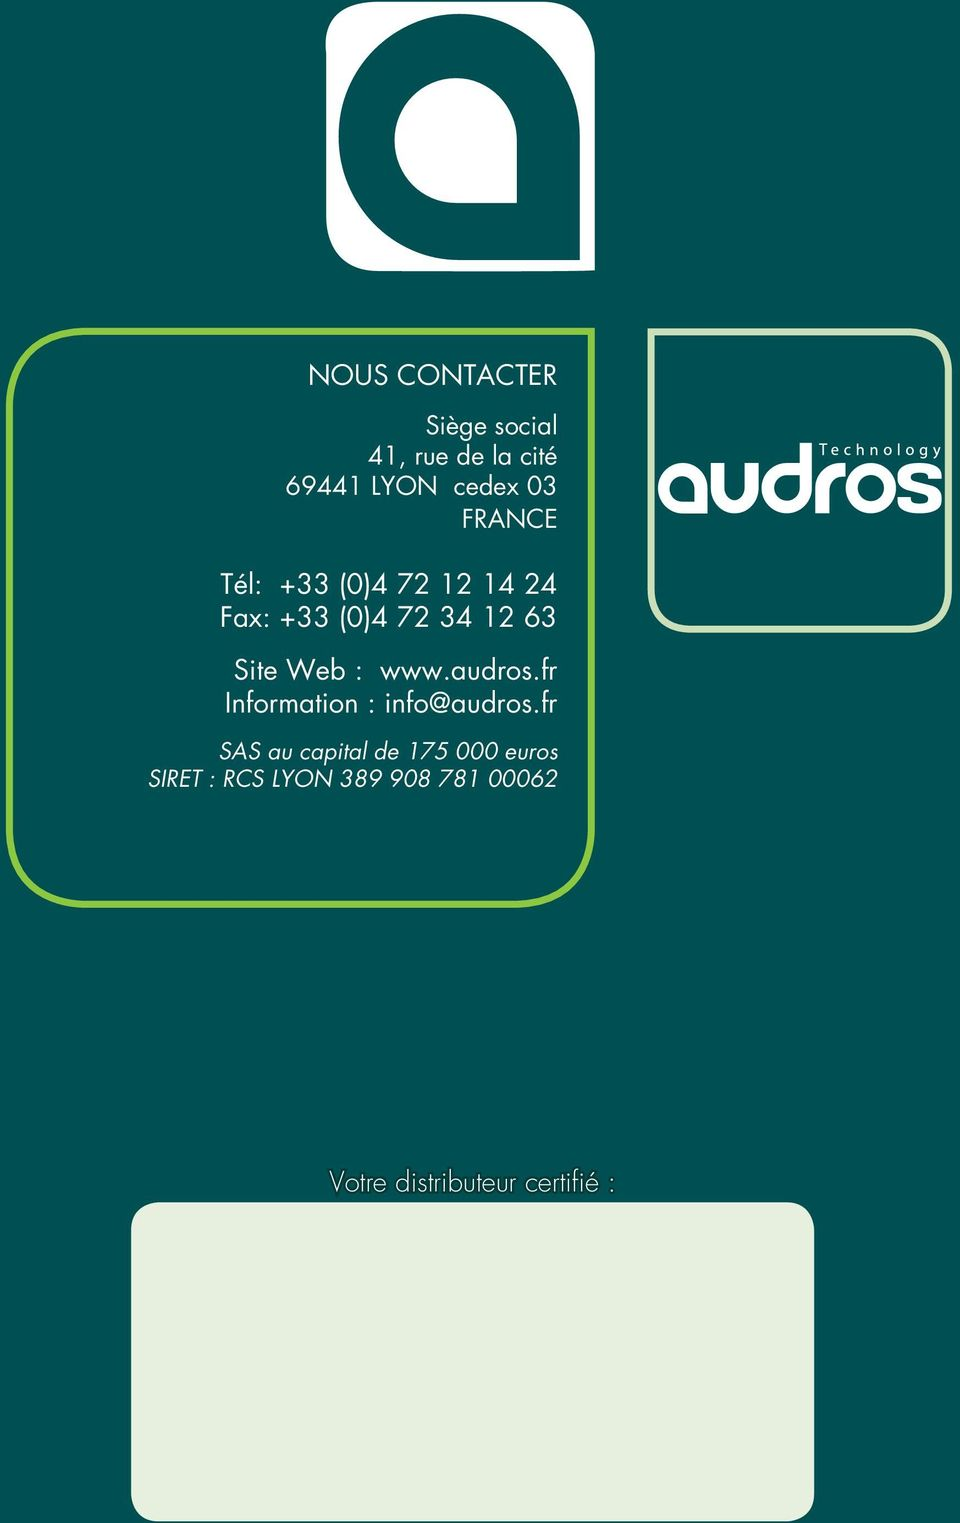 www.audros.fr Information : info@audros.